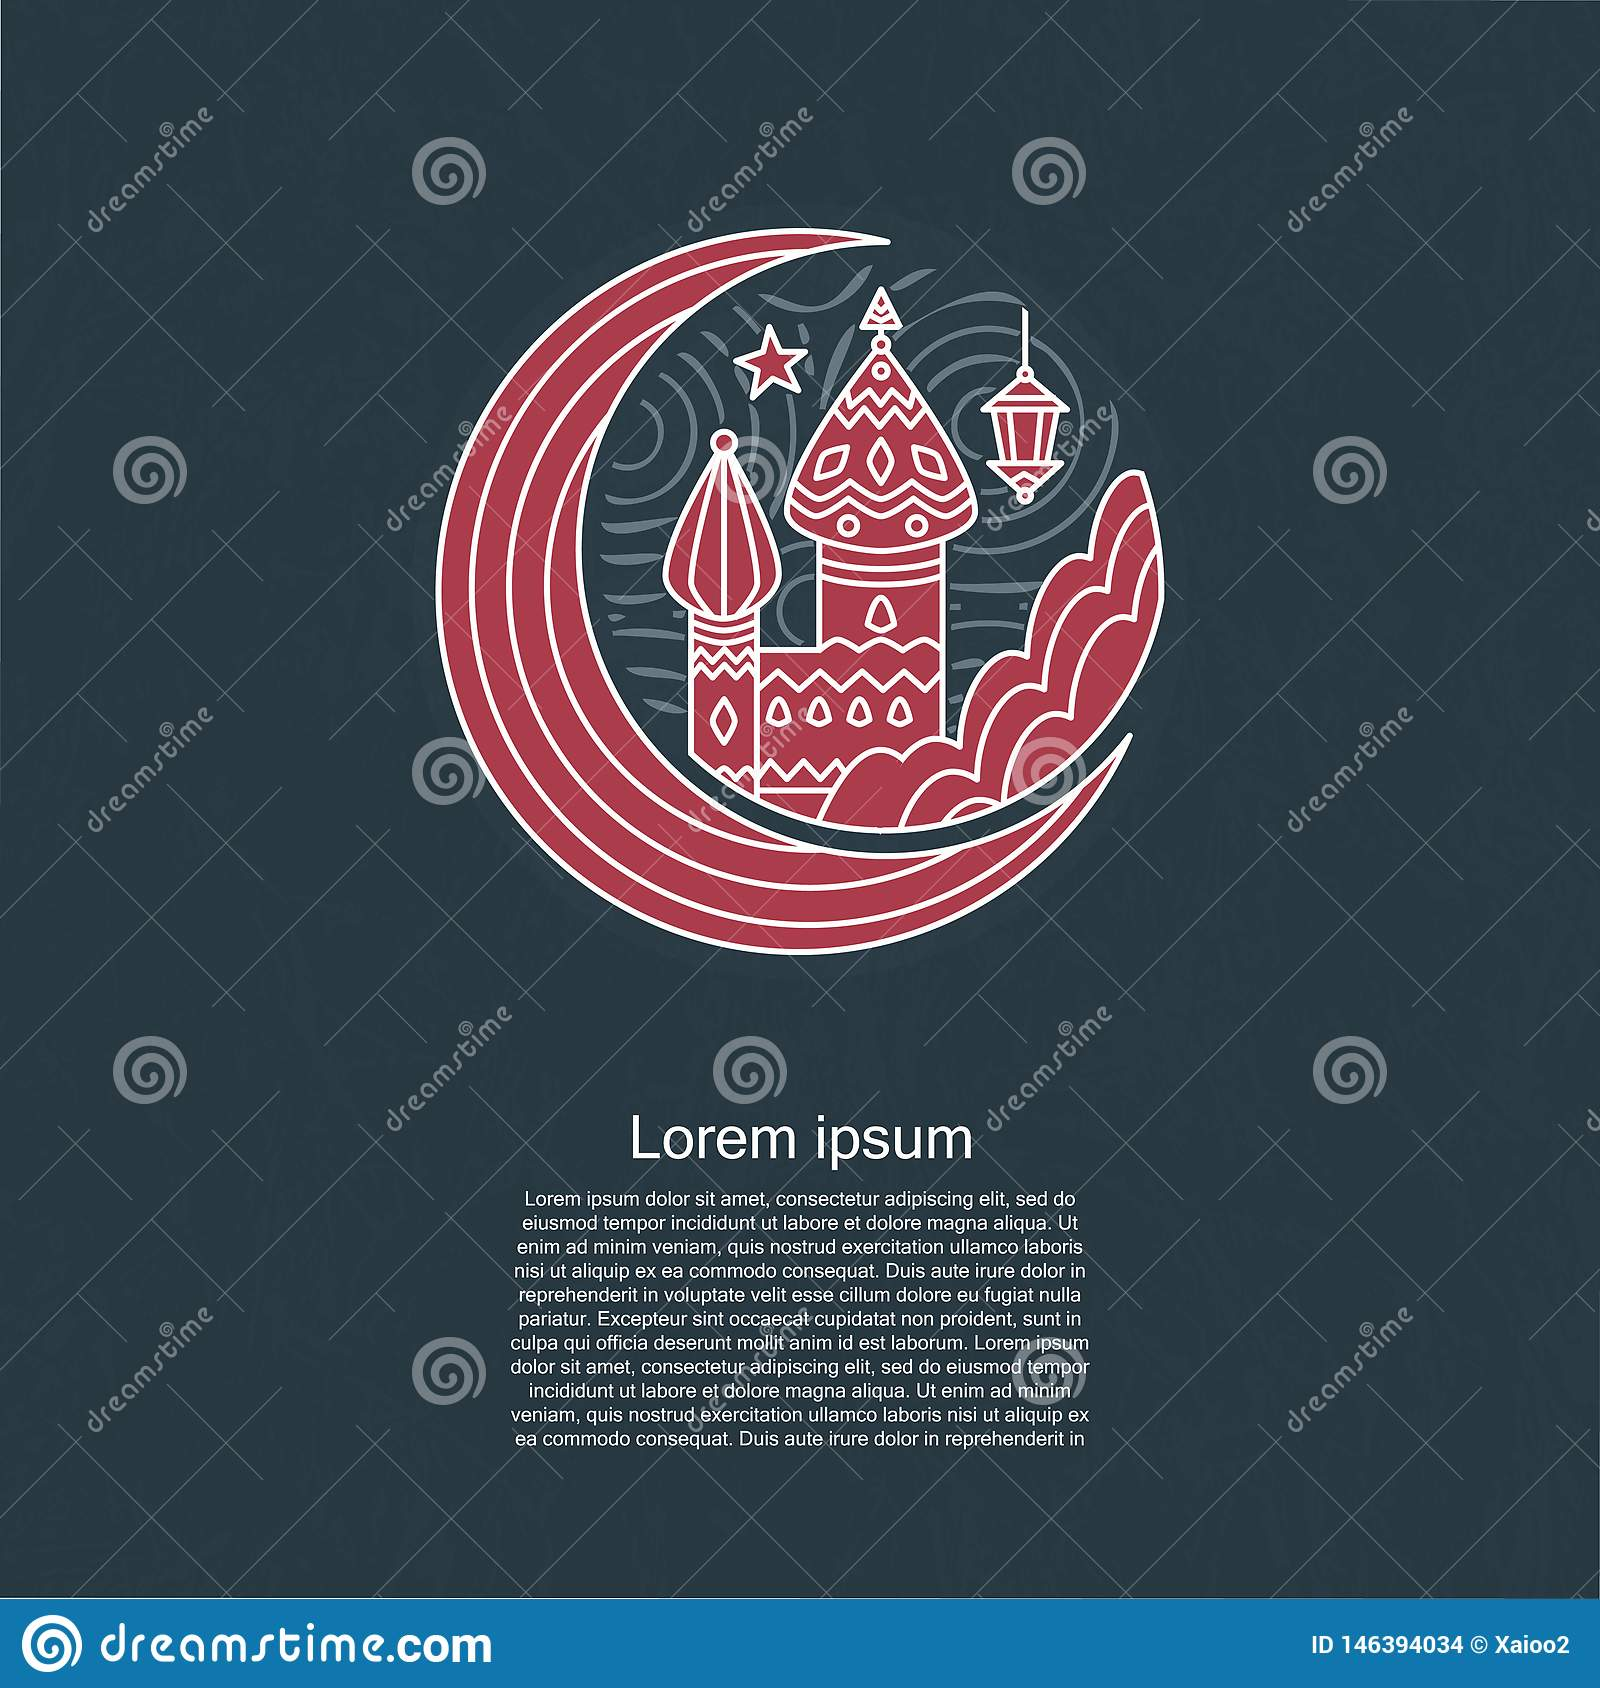 Arabic ramadan template islamic background islam vector muslim design card illustration